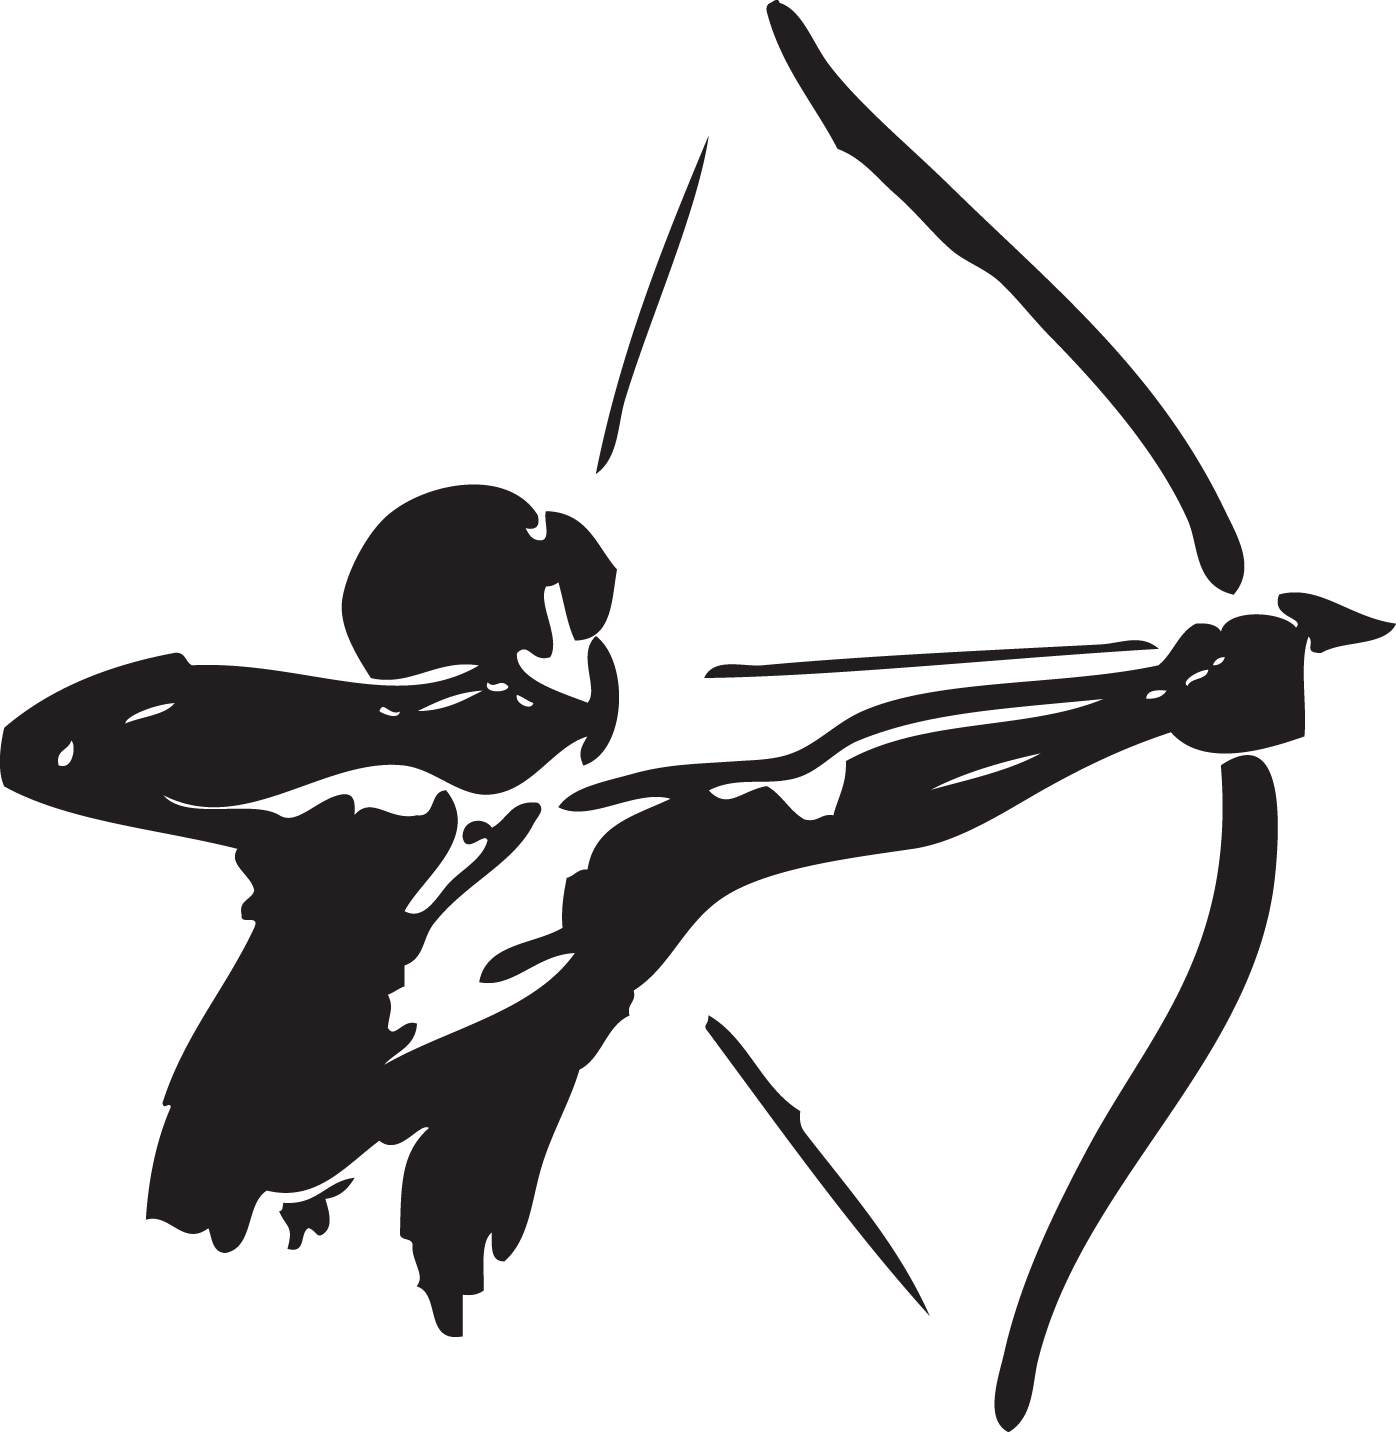 banner royalty free library And arrow hunting clip. Archery bow clipart.